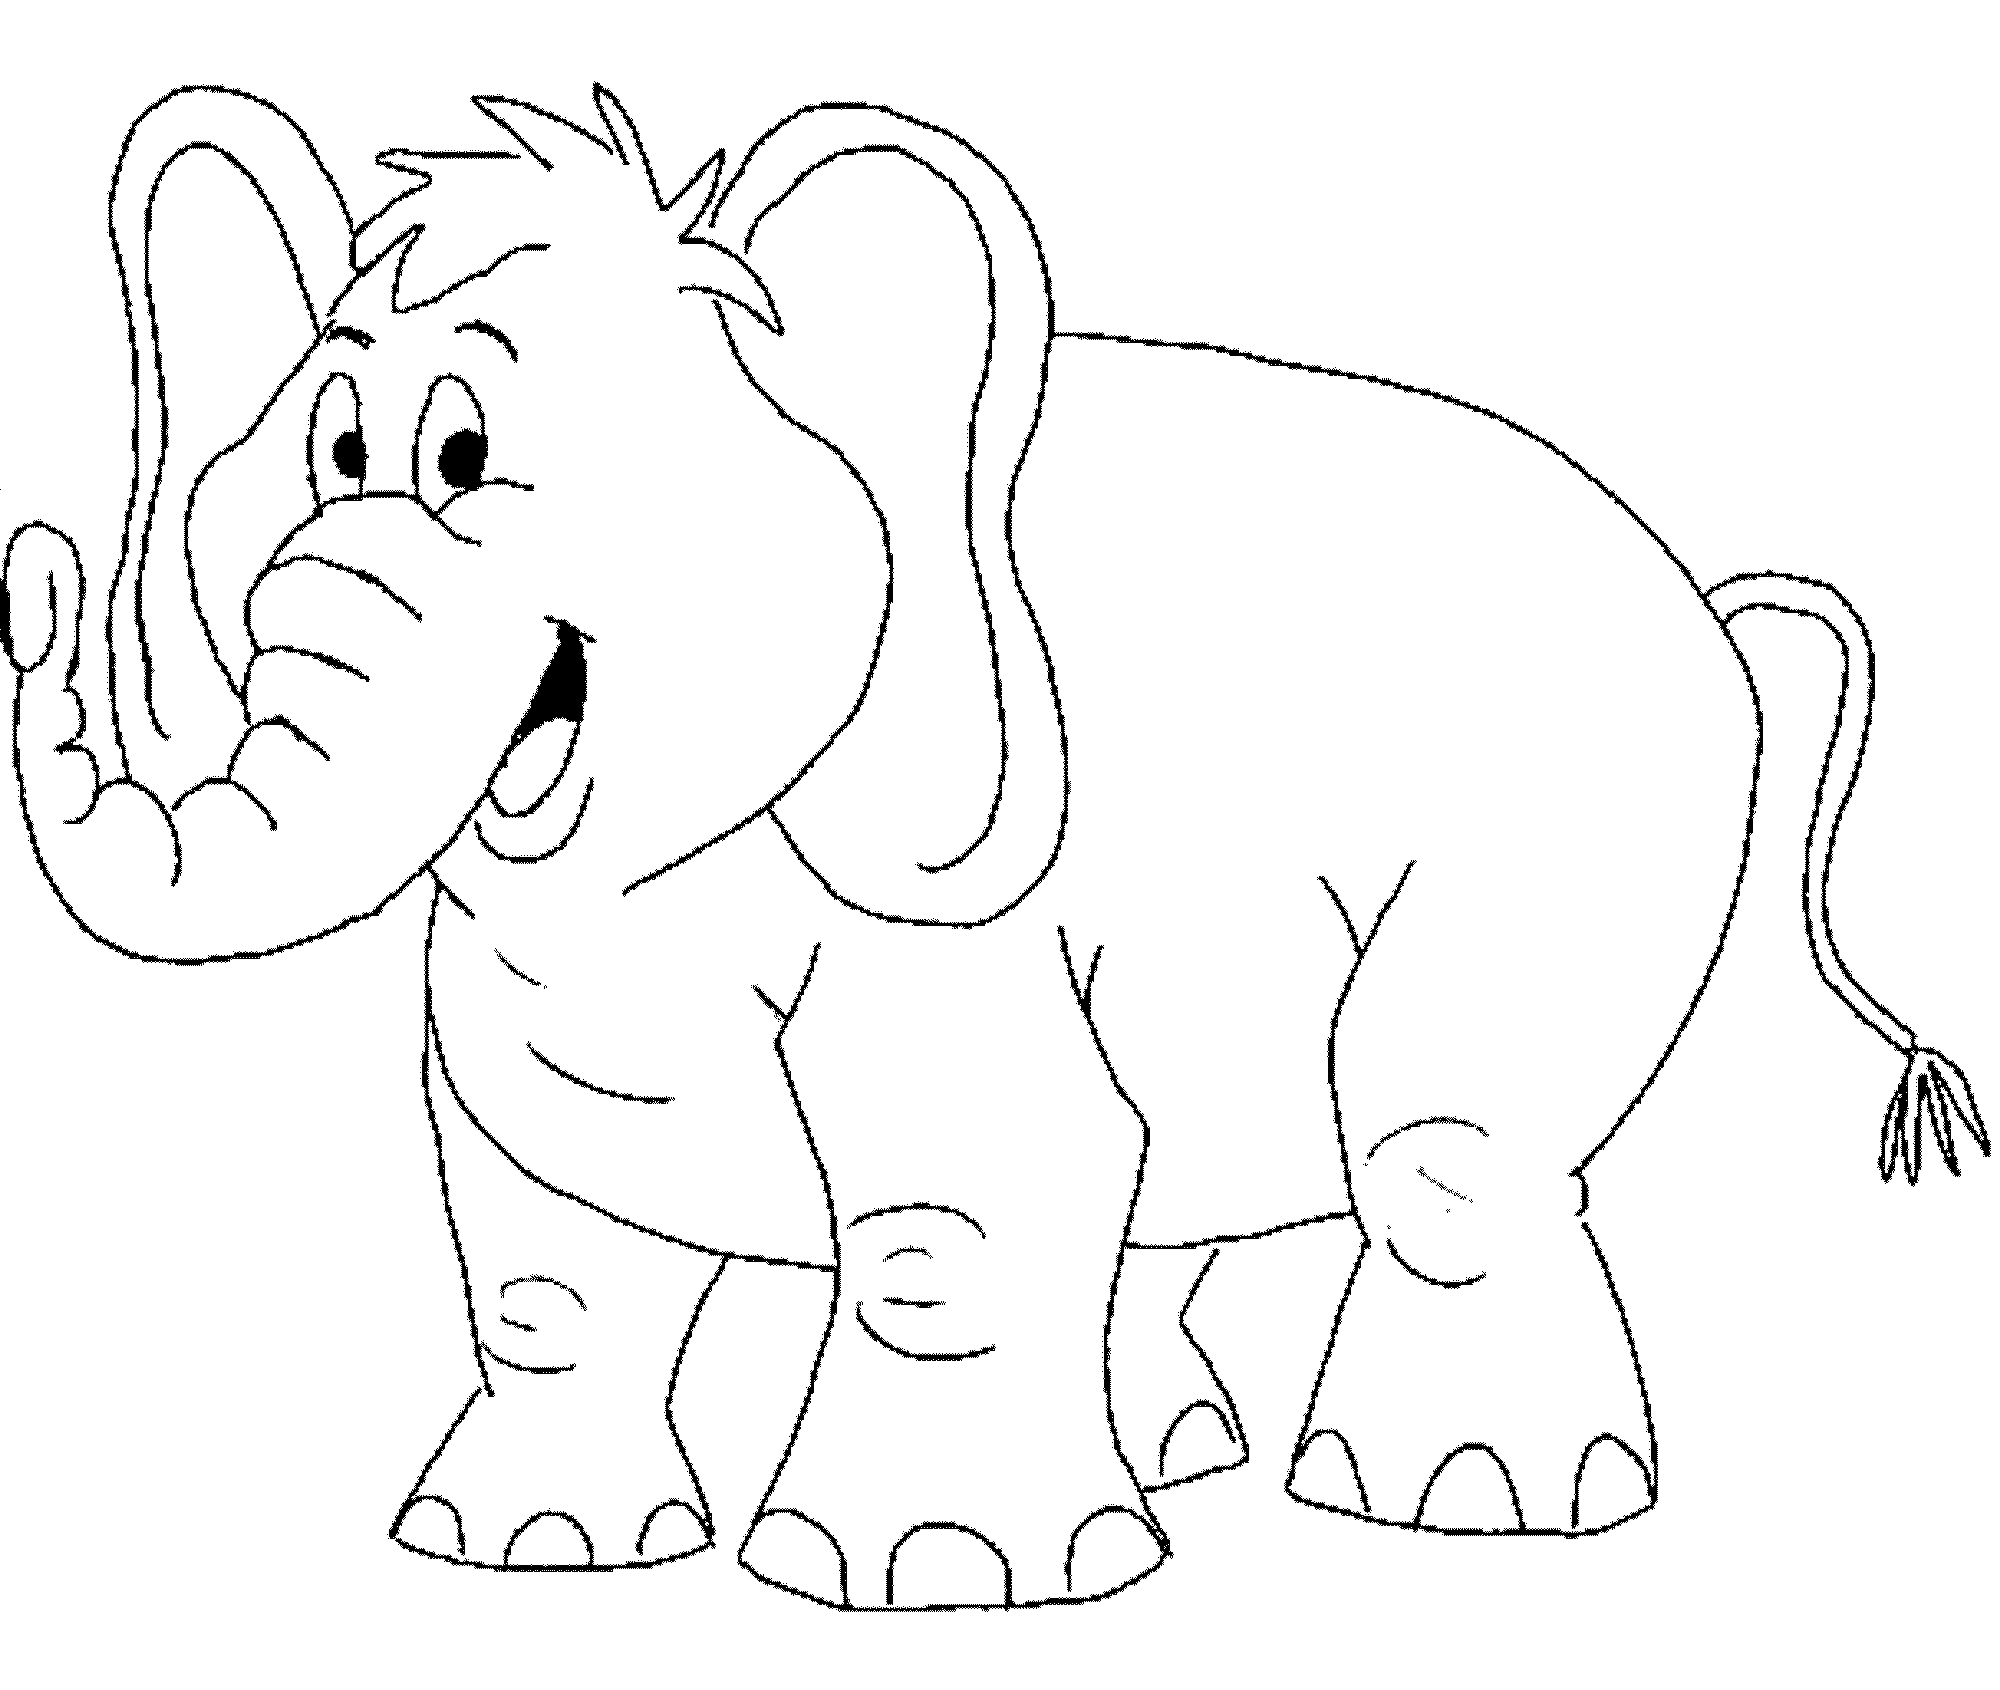 elephant coloring picture print download teaching kids through elephant coloring picture elephant coloring 1 1